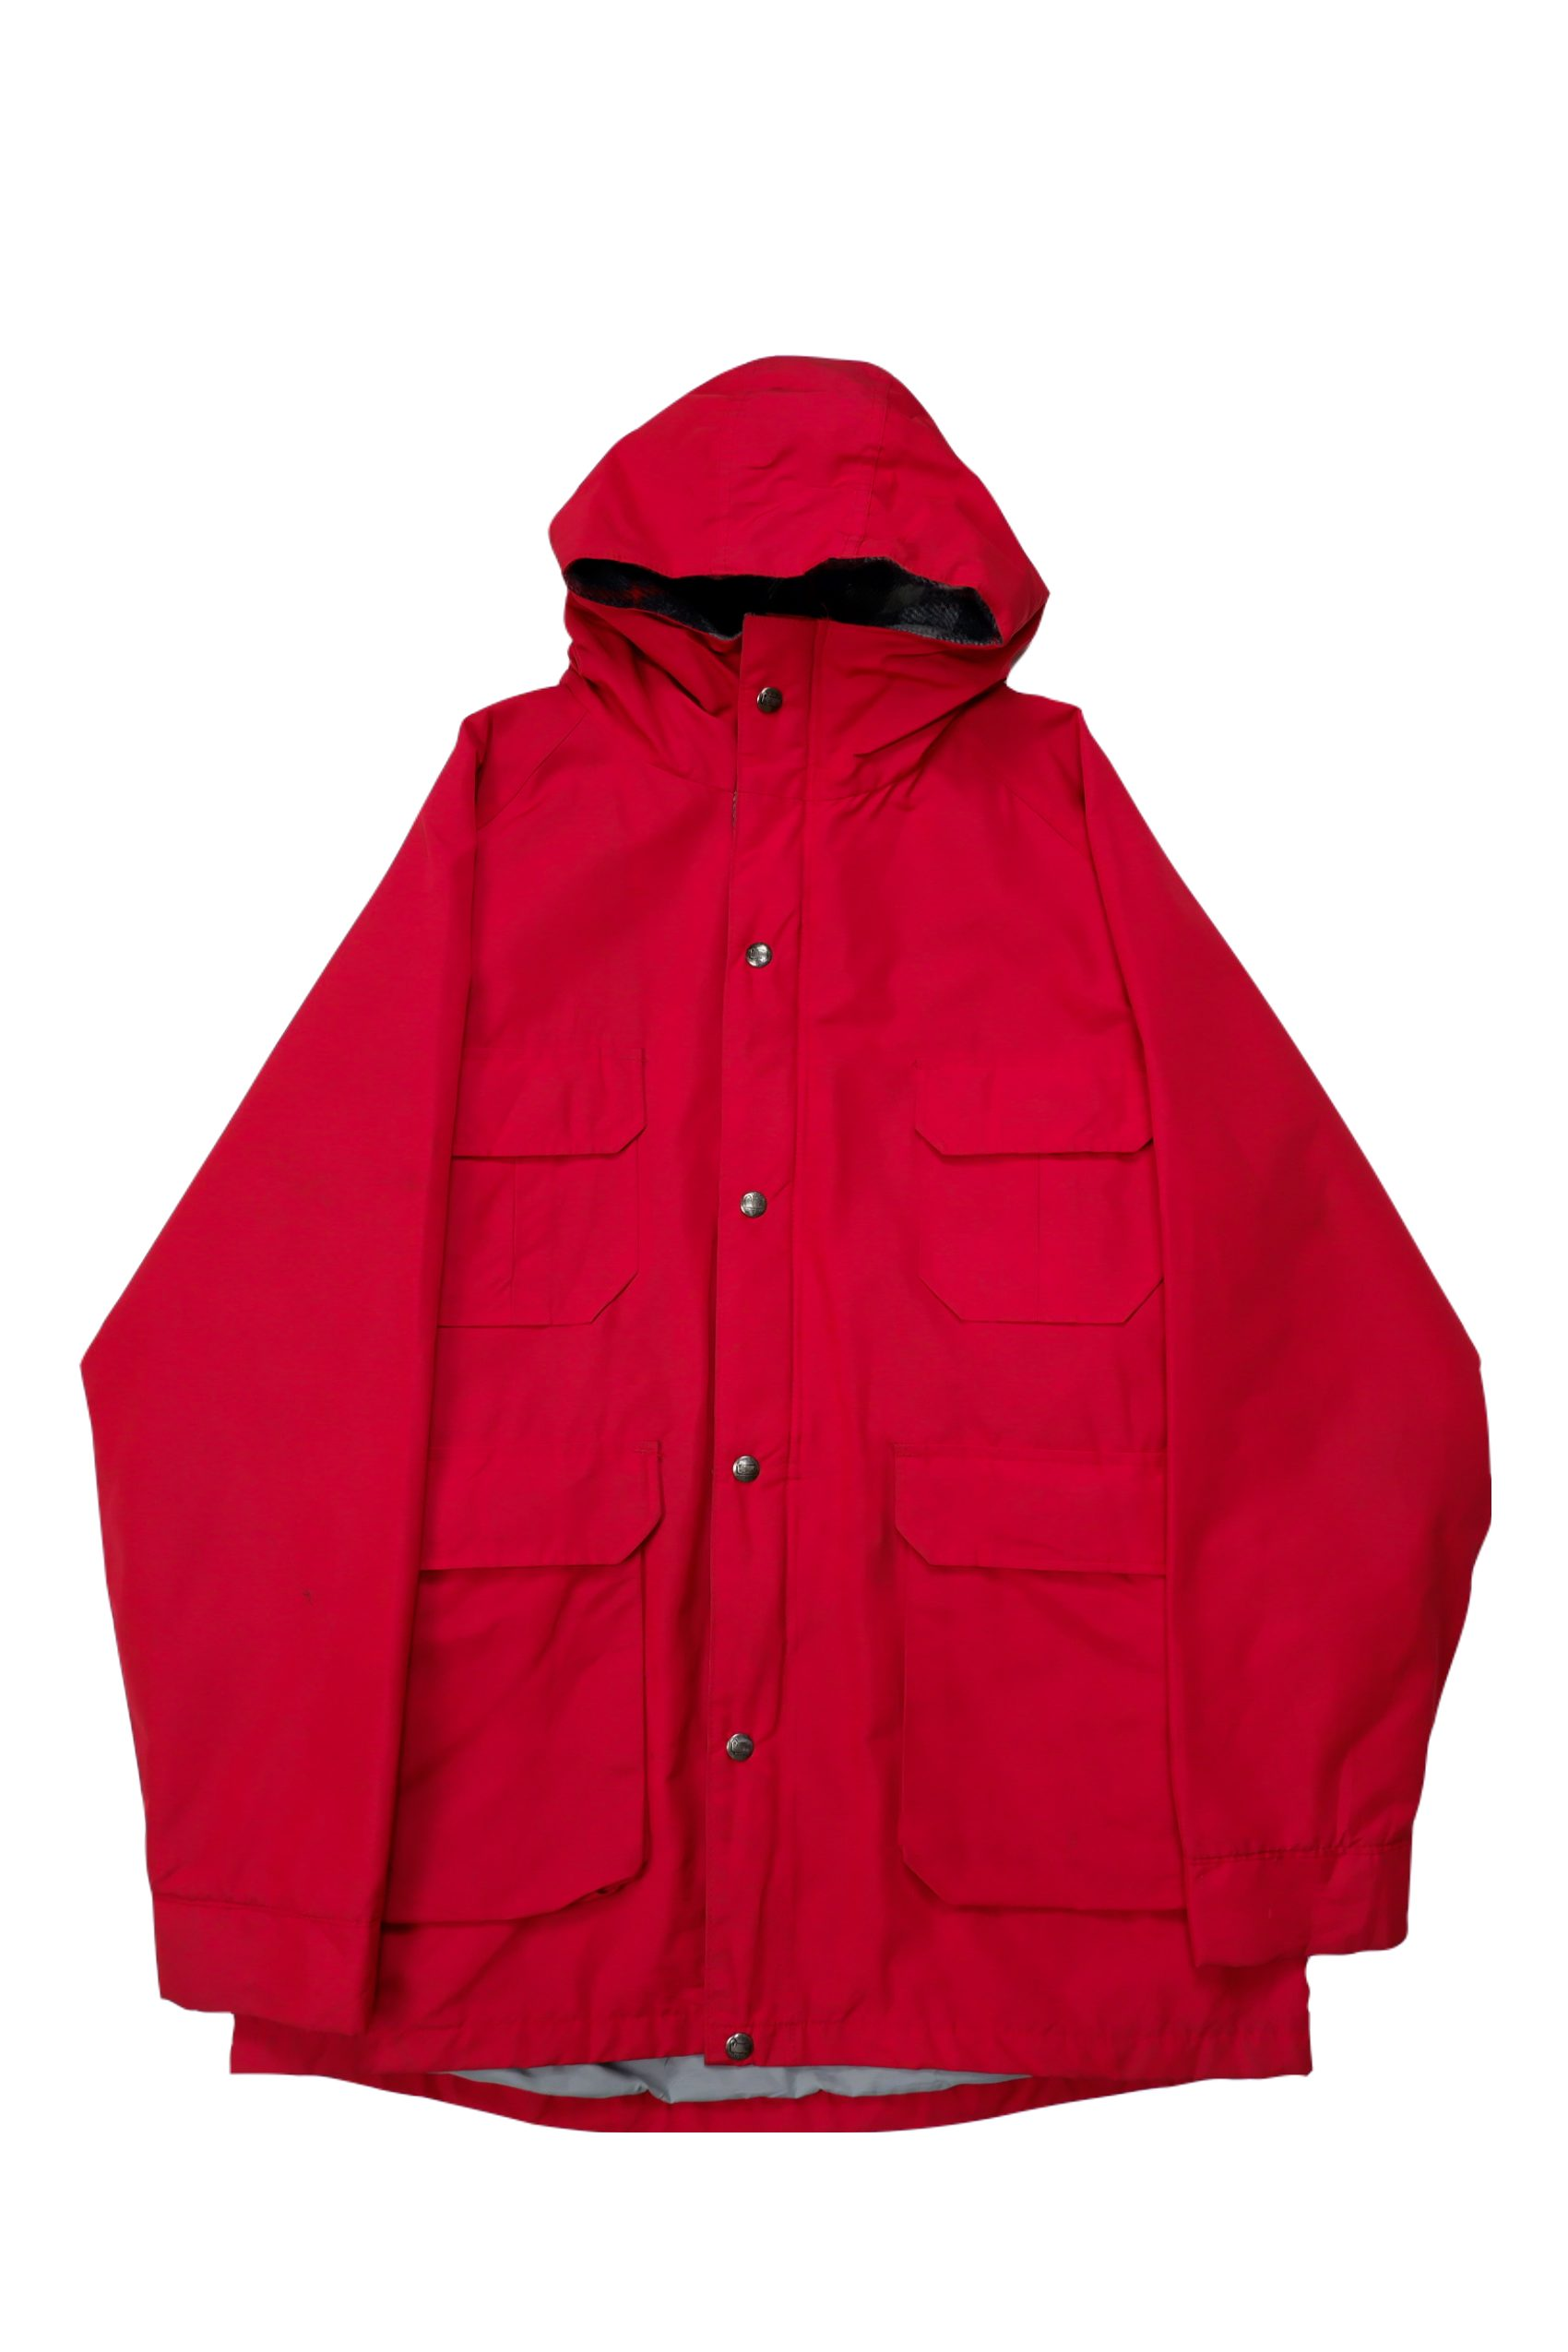 WOOLRICH Vintage Outdoor Jacket_ Made in USA